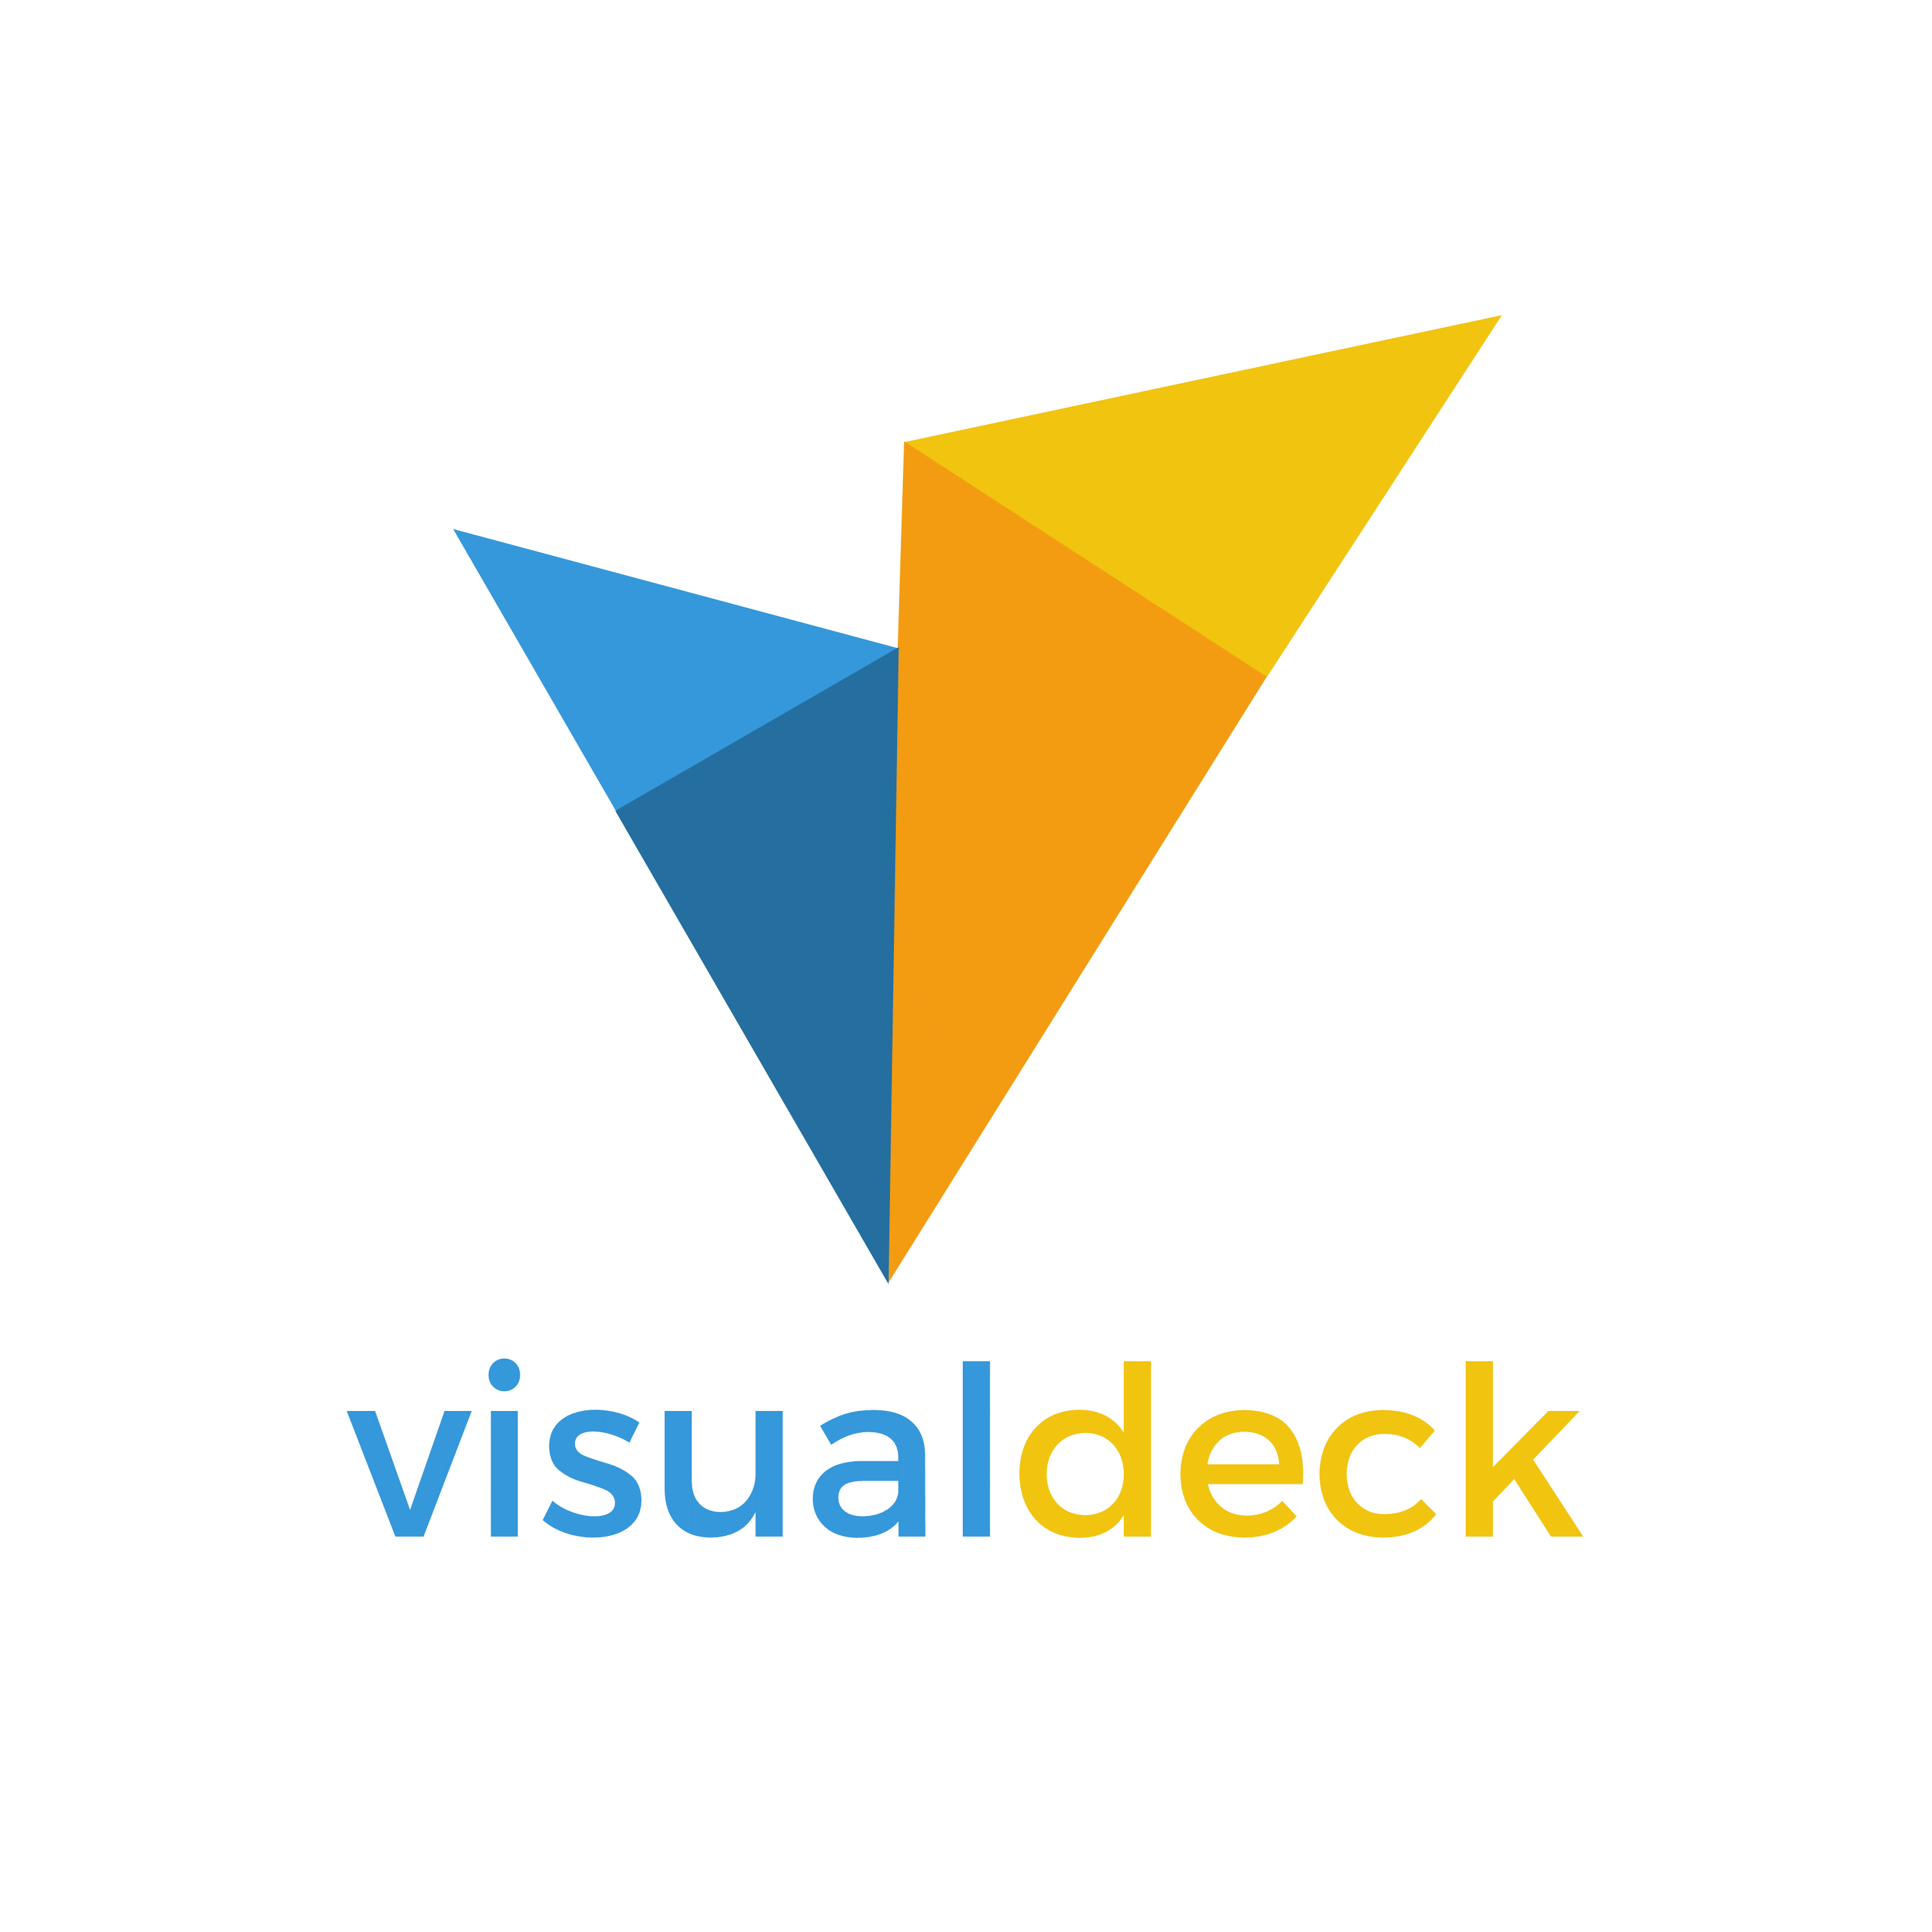 Visual Deck